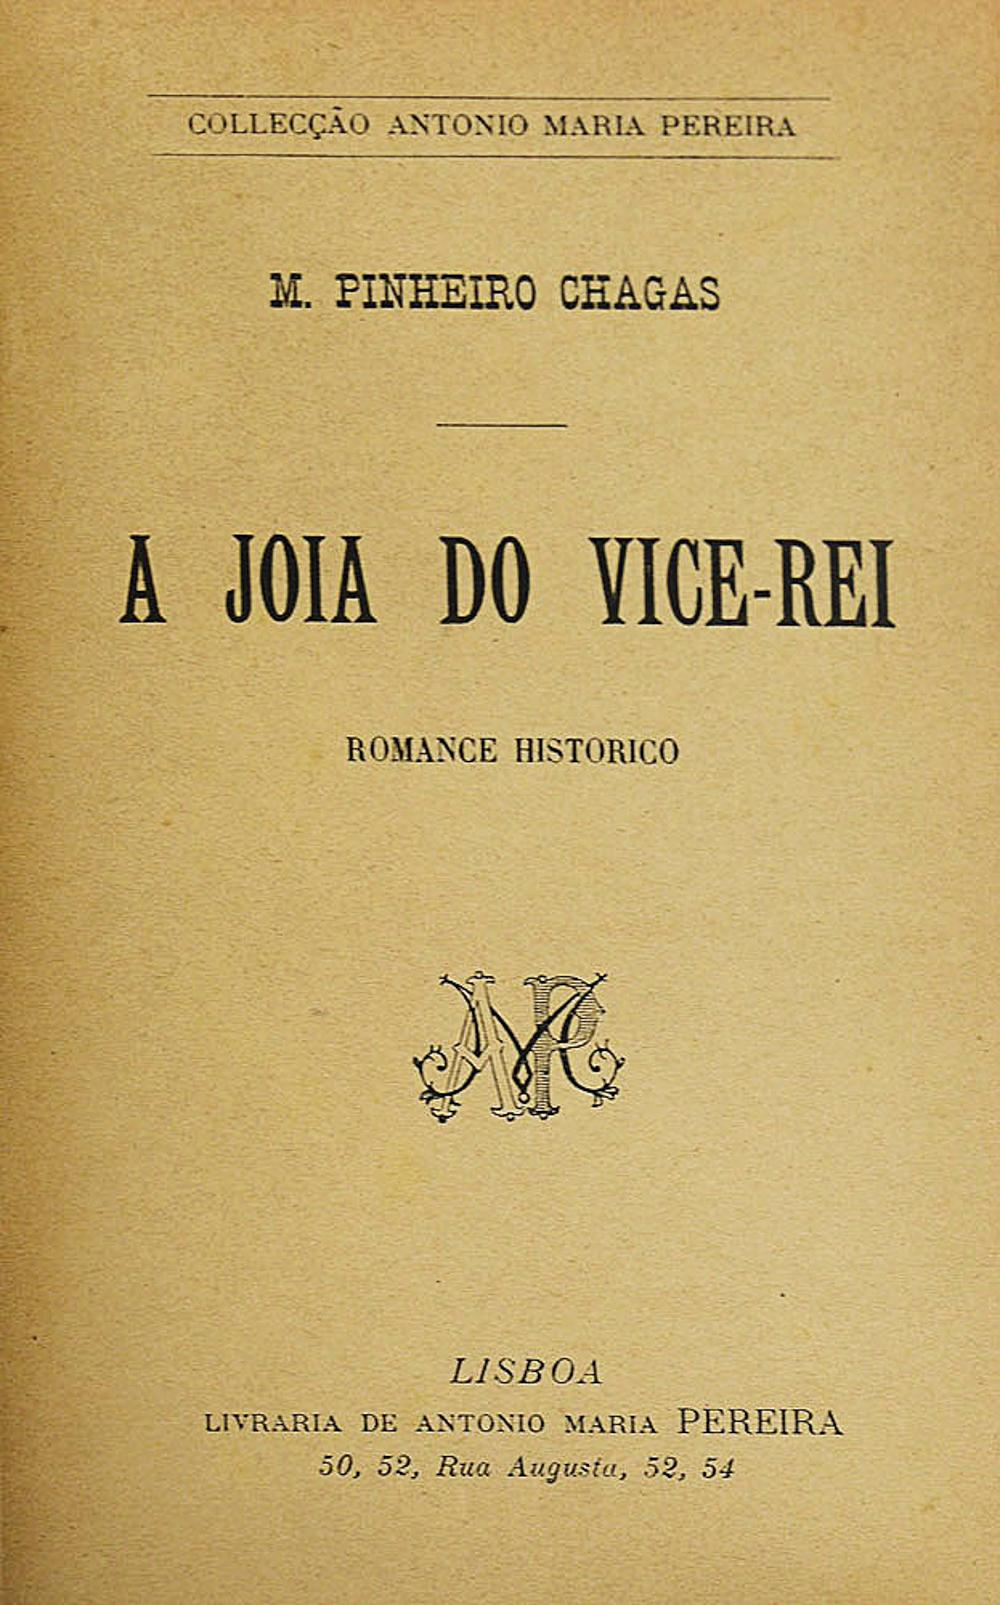 CHAGAS. A JOIA DO VICE-REI, 1 vol. enc.